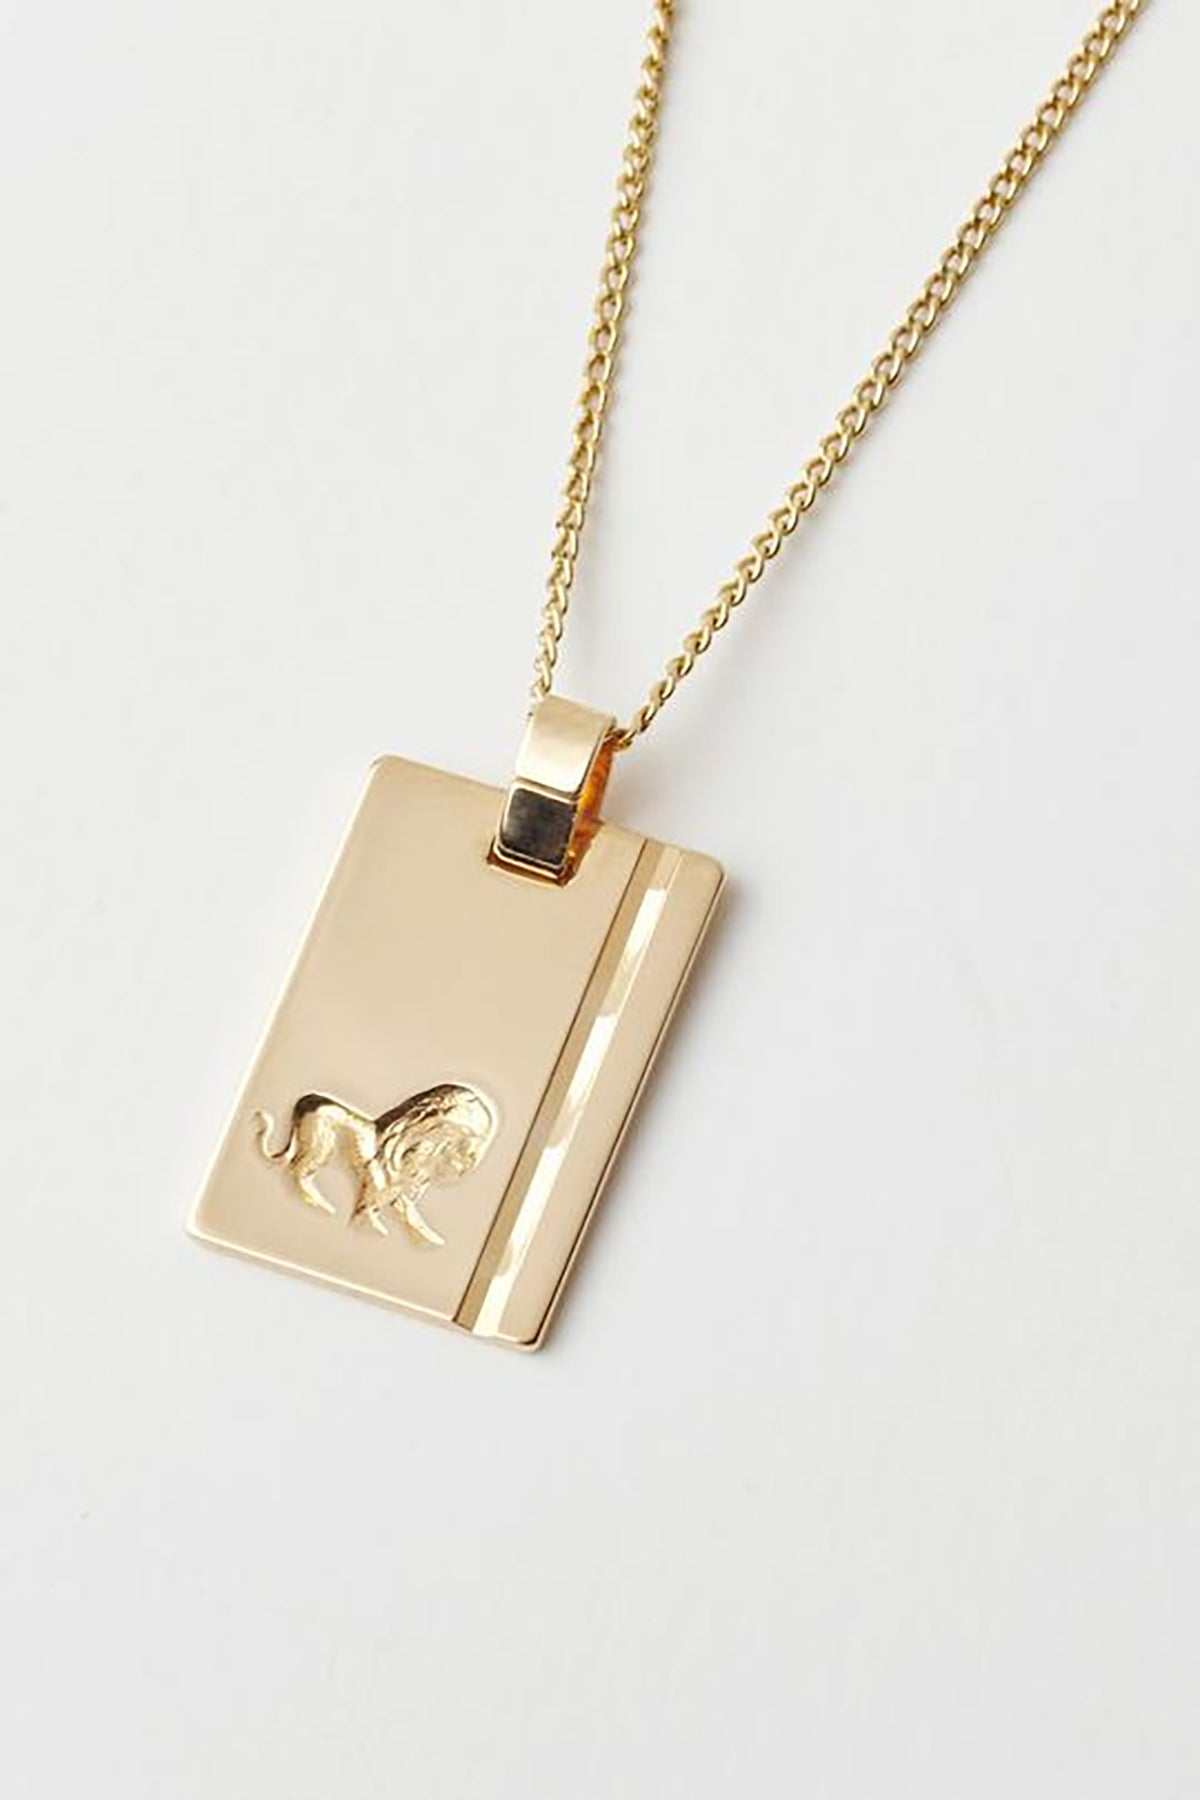 Reliquia Leo Star Sign Necklace